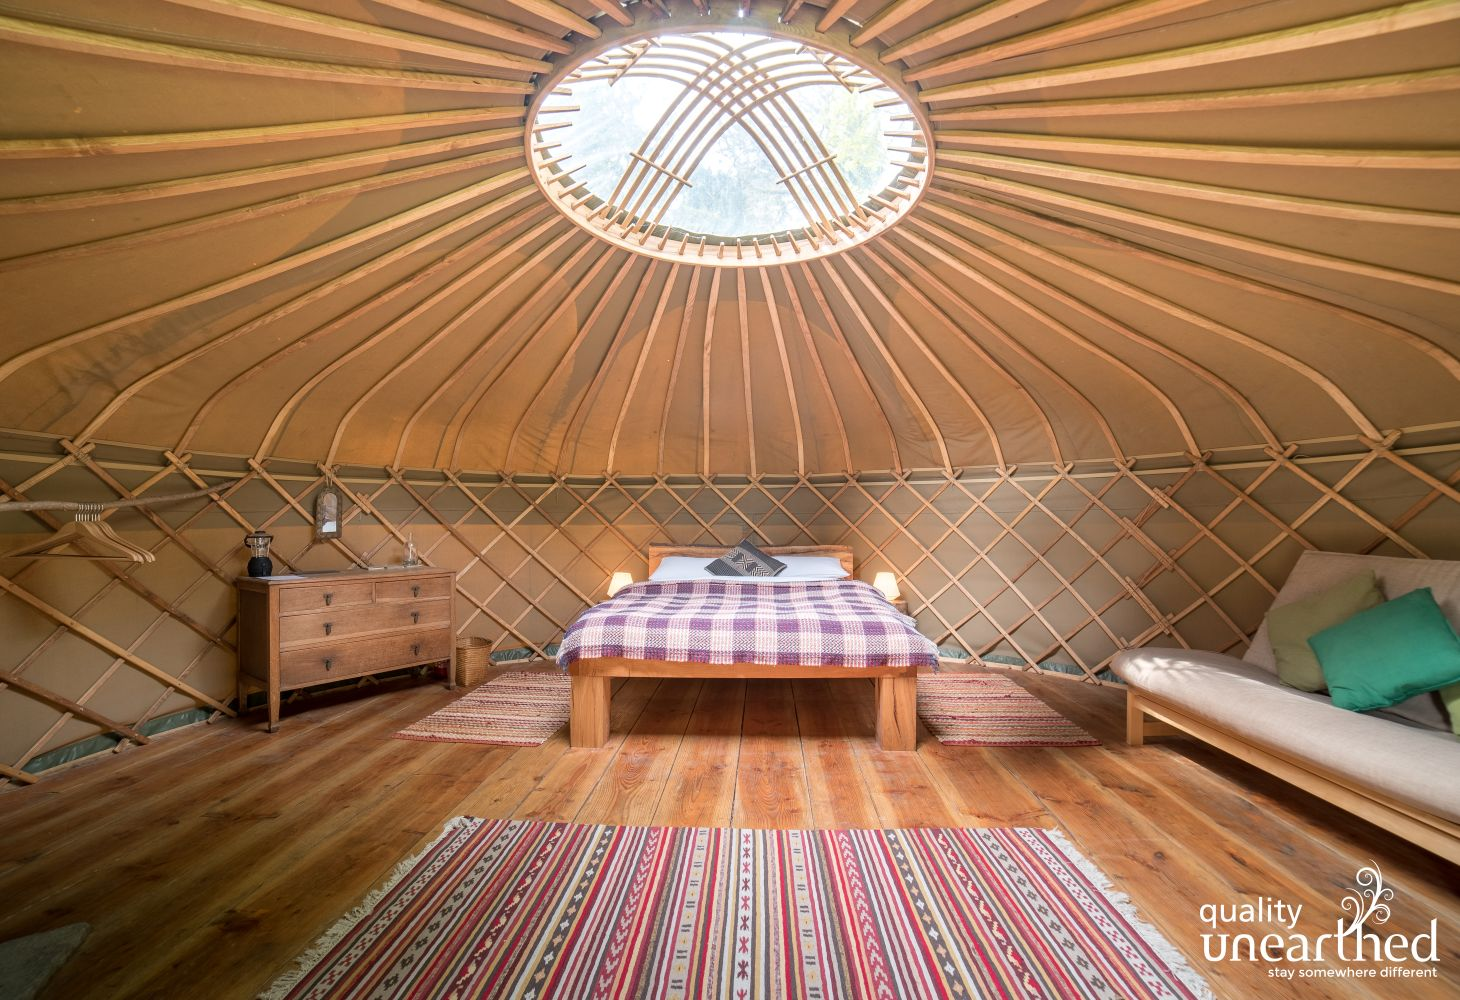 Star gaze from your handmade bed at Seren yurt for 5